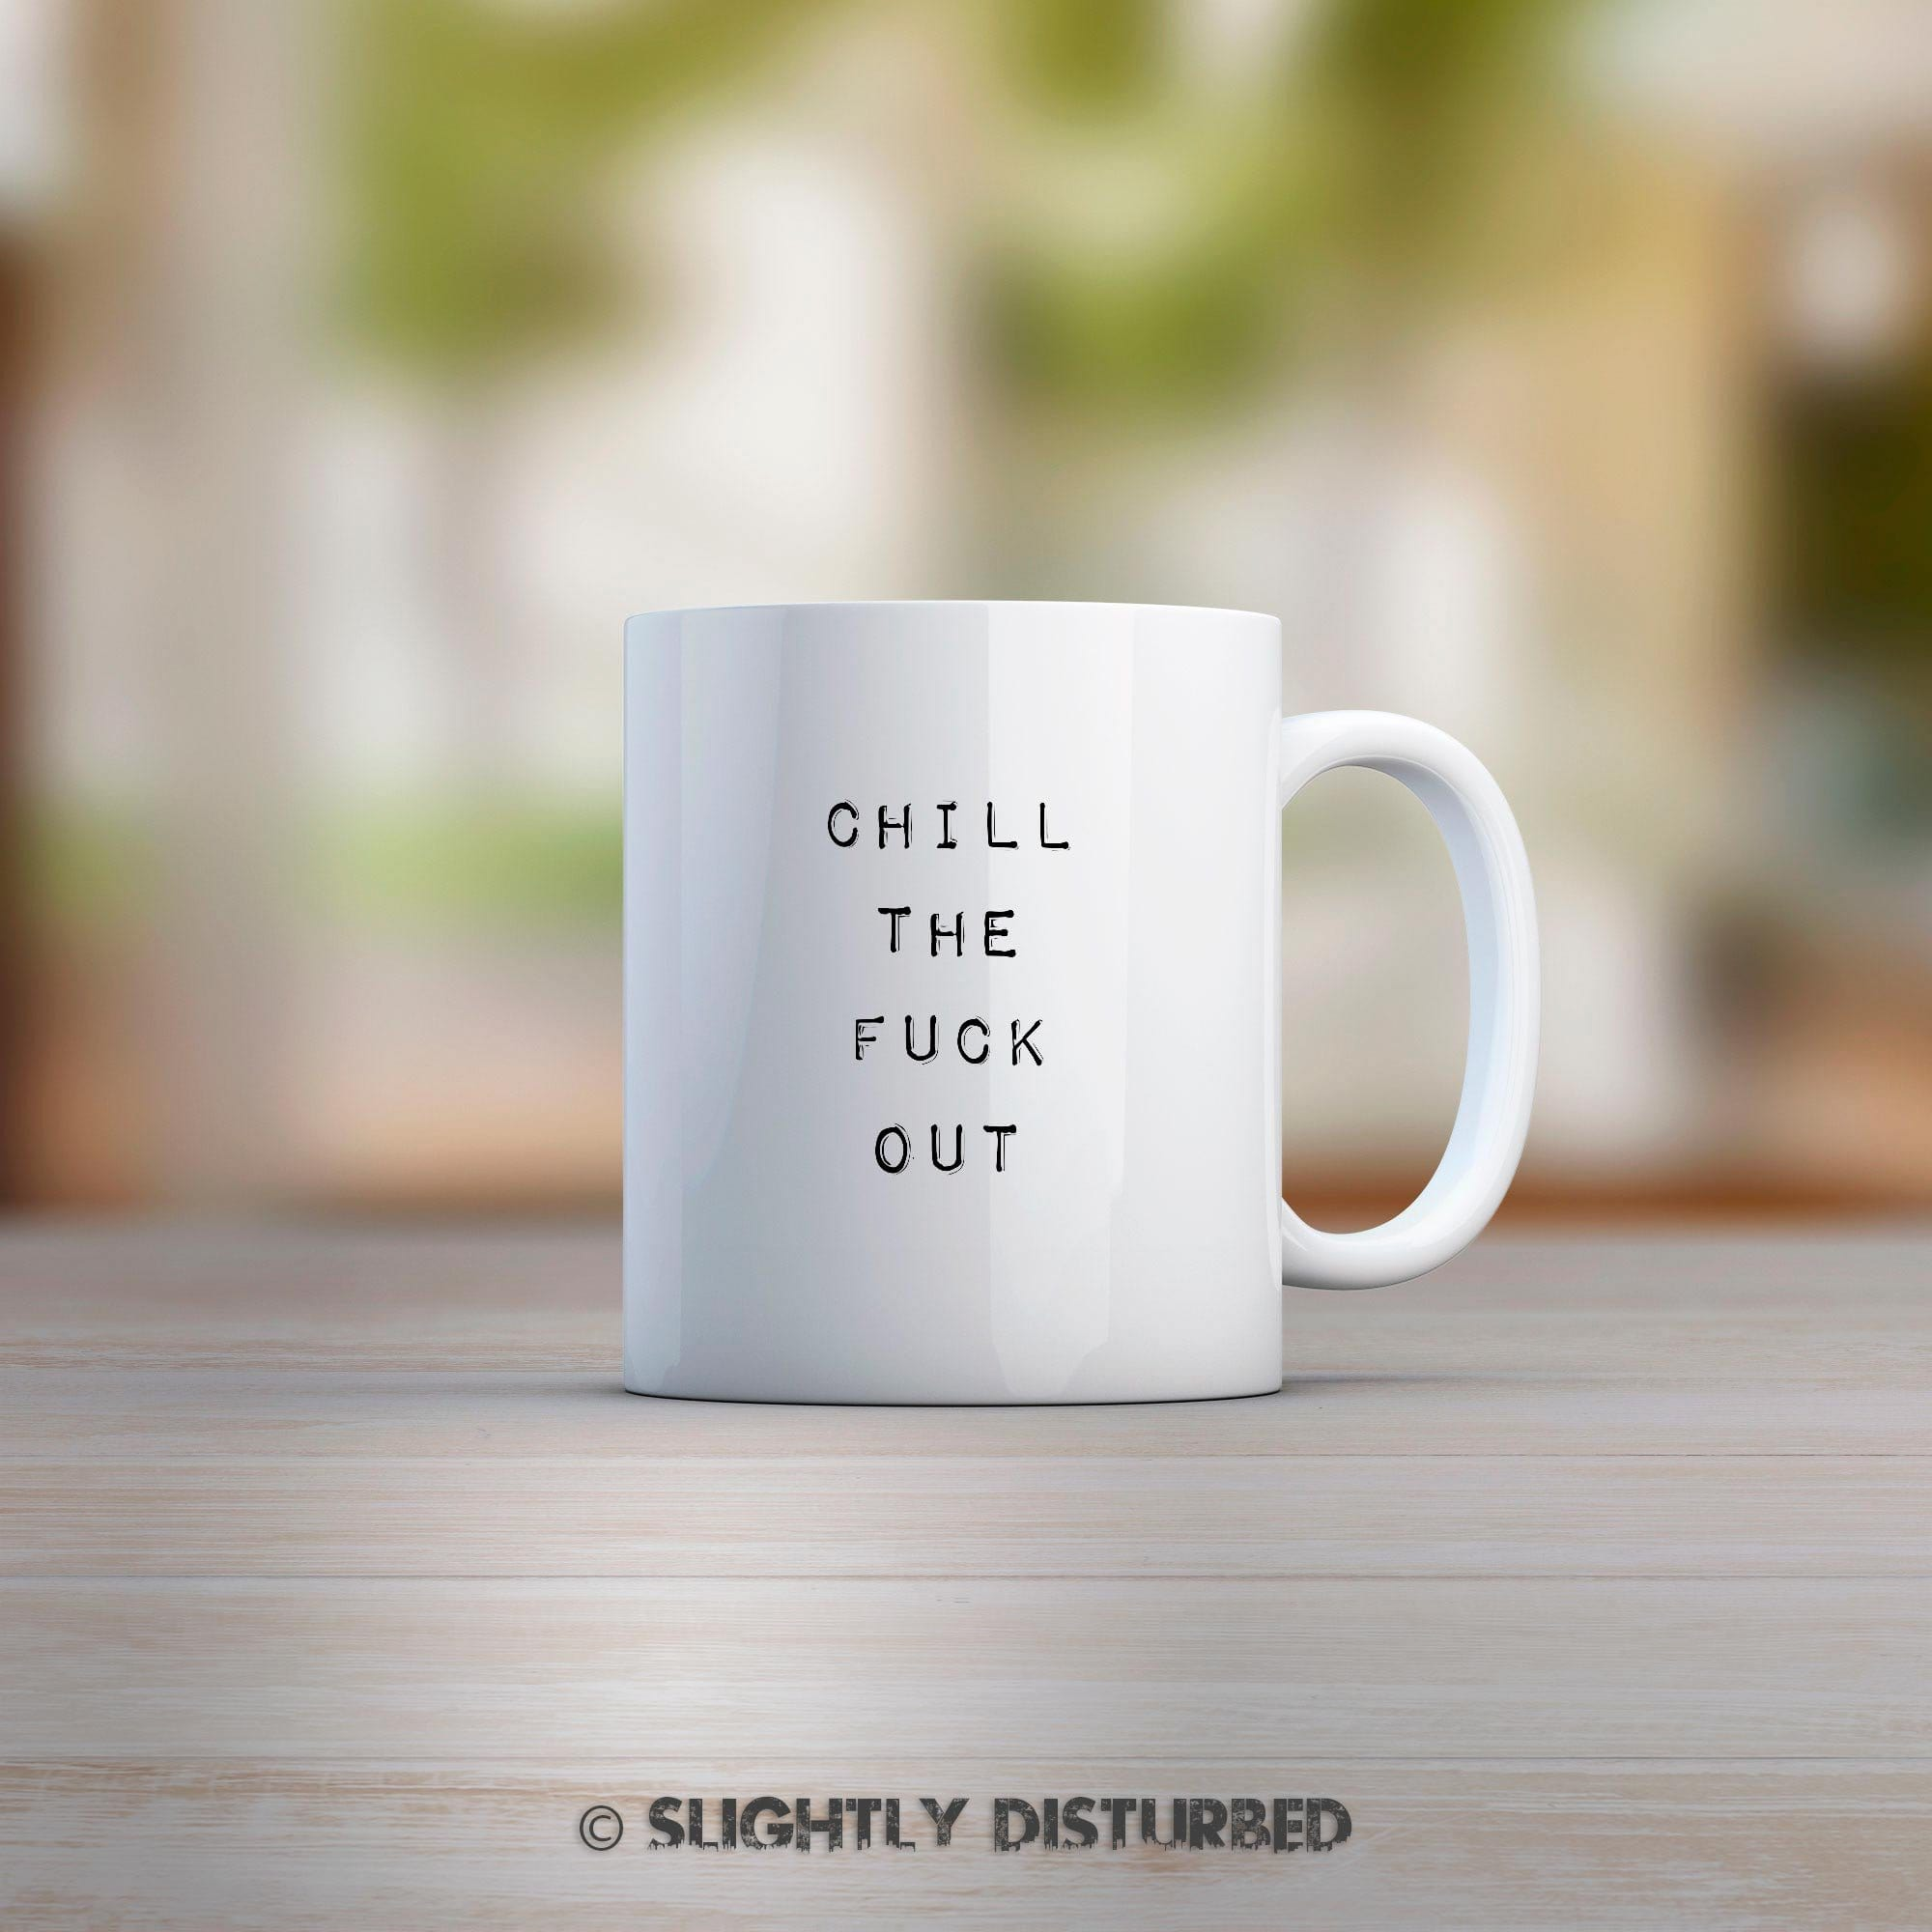 Chill The Fuck Out Mug - Slightly Disturbed